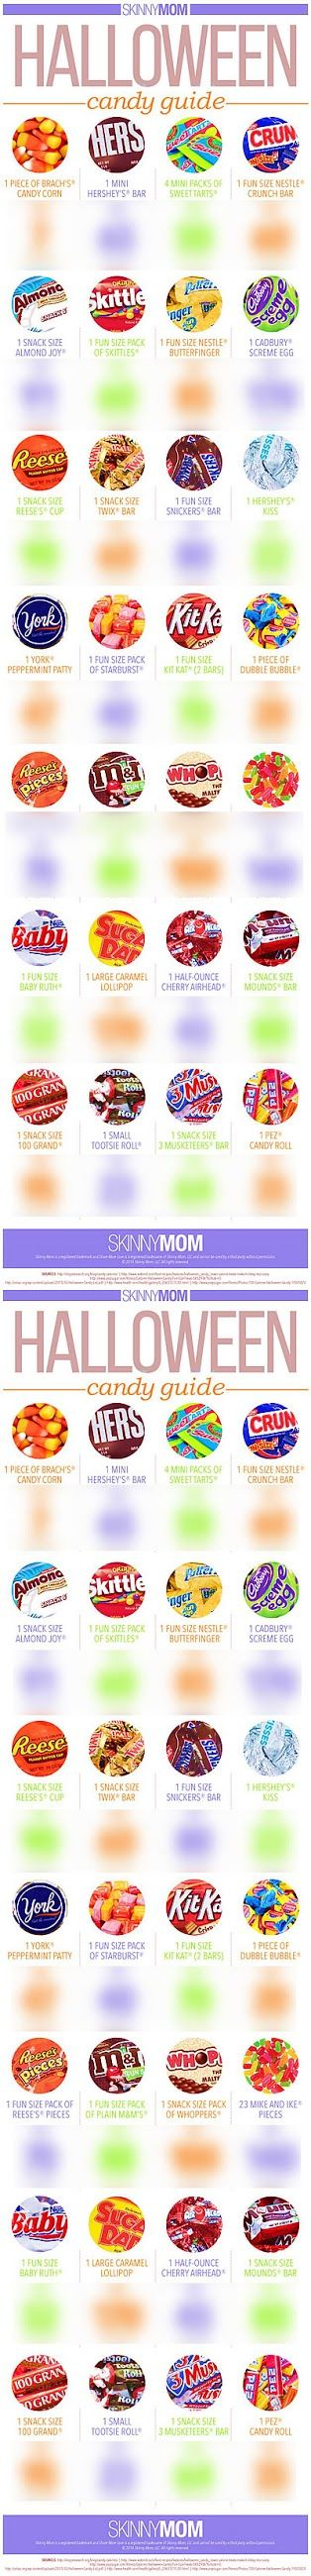 http://www.5stareasyrecipes.com/p/ultimate-guide-to-halloween-candy_21.html